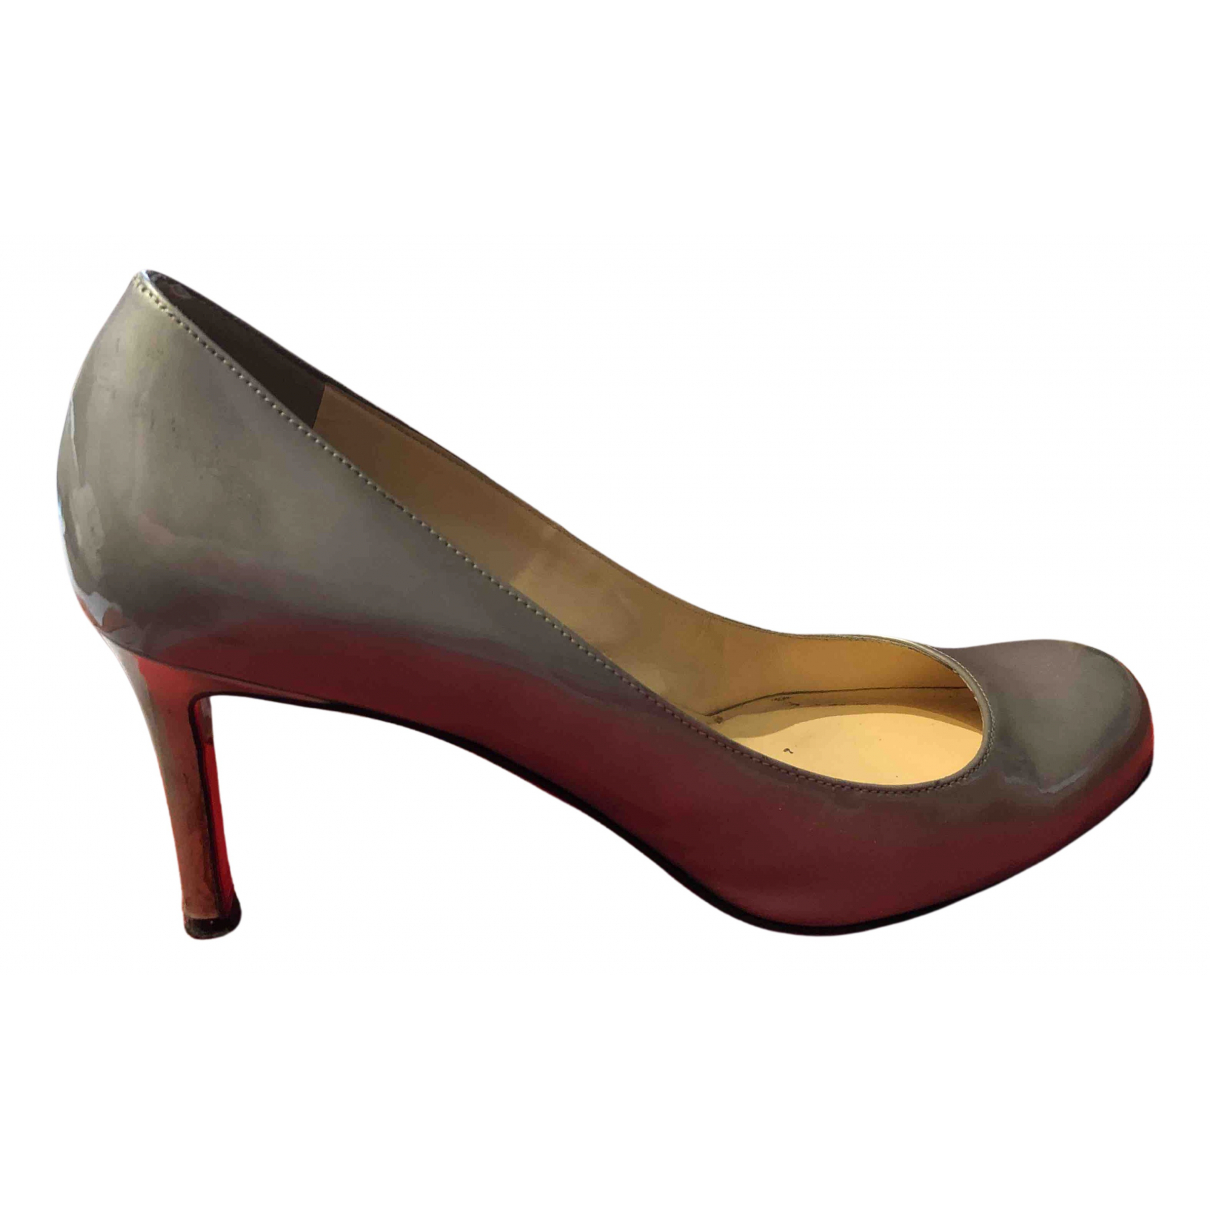 Christian Louboutin N Grey Leather Heels for Women 37.5 EU